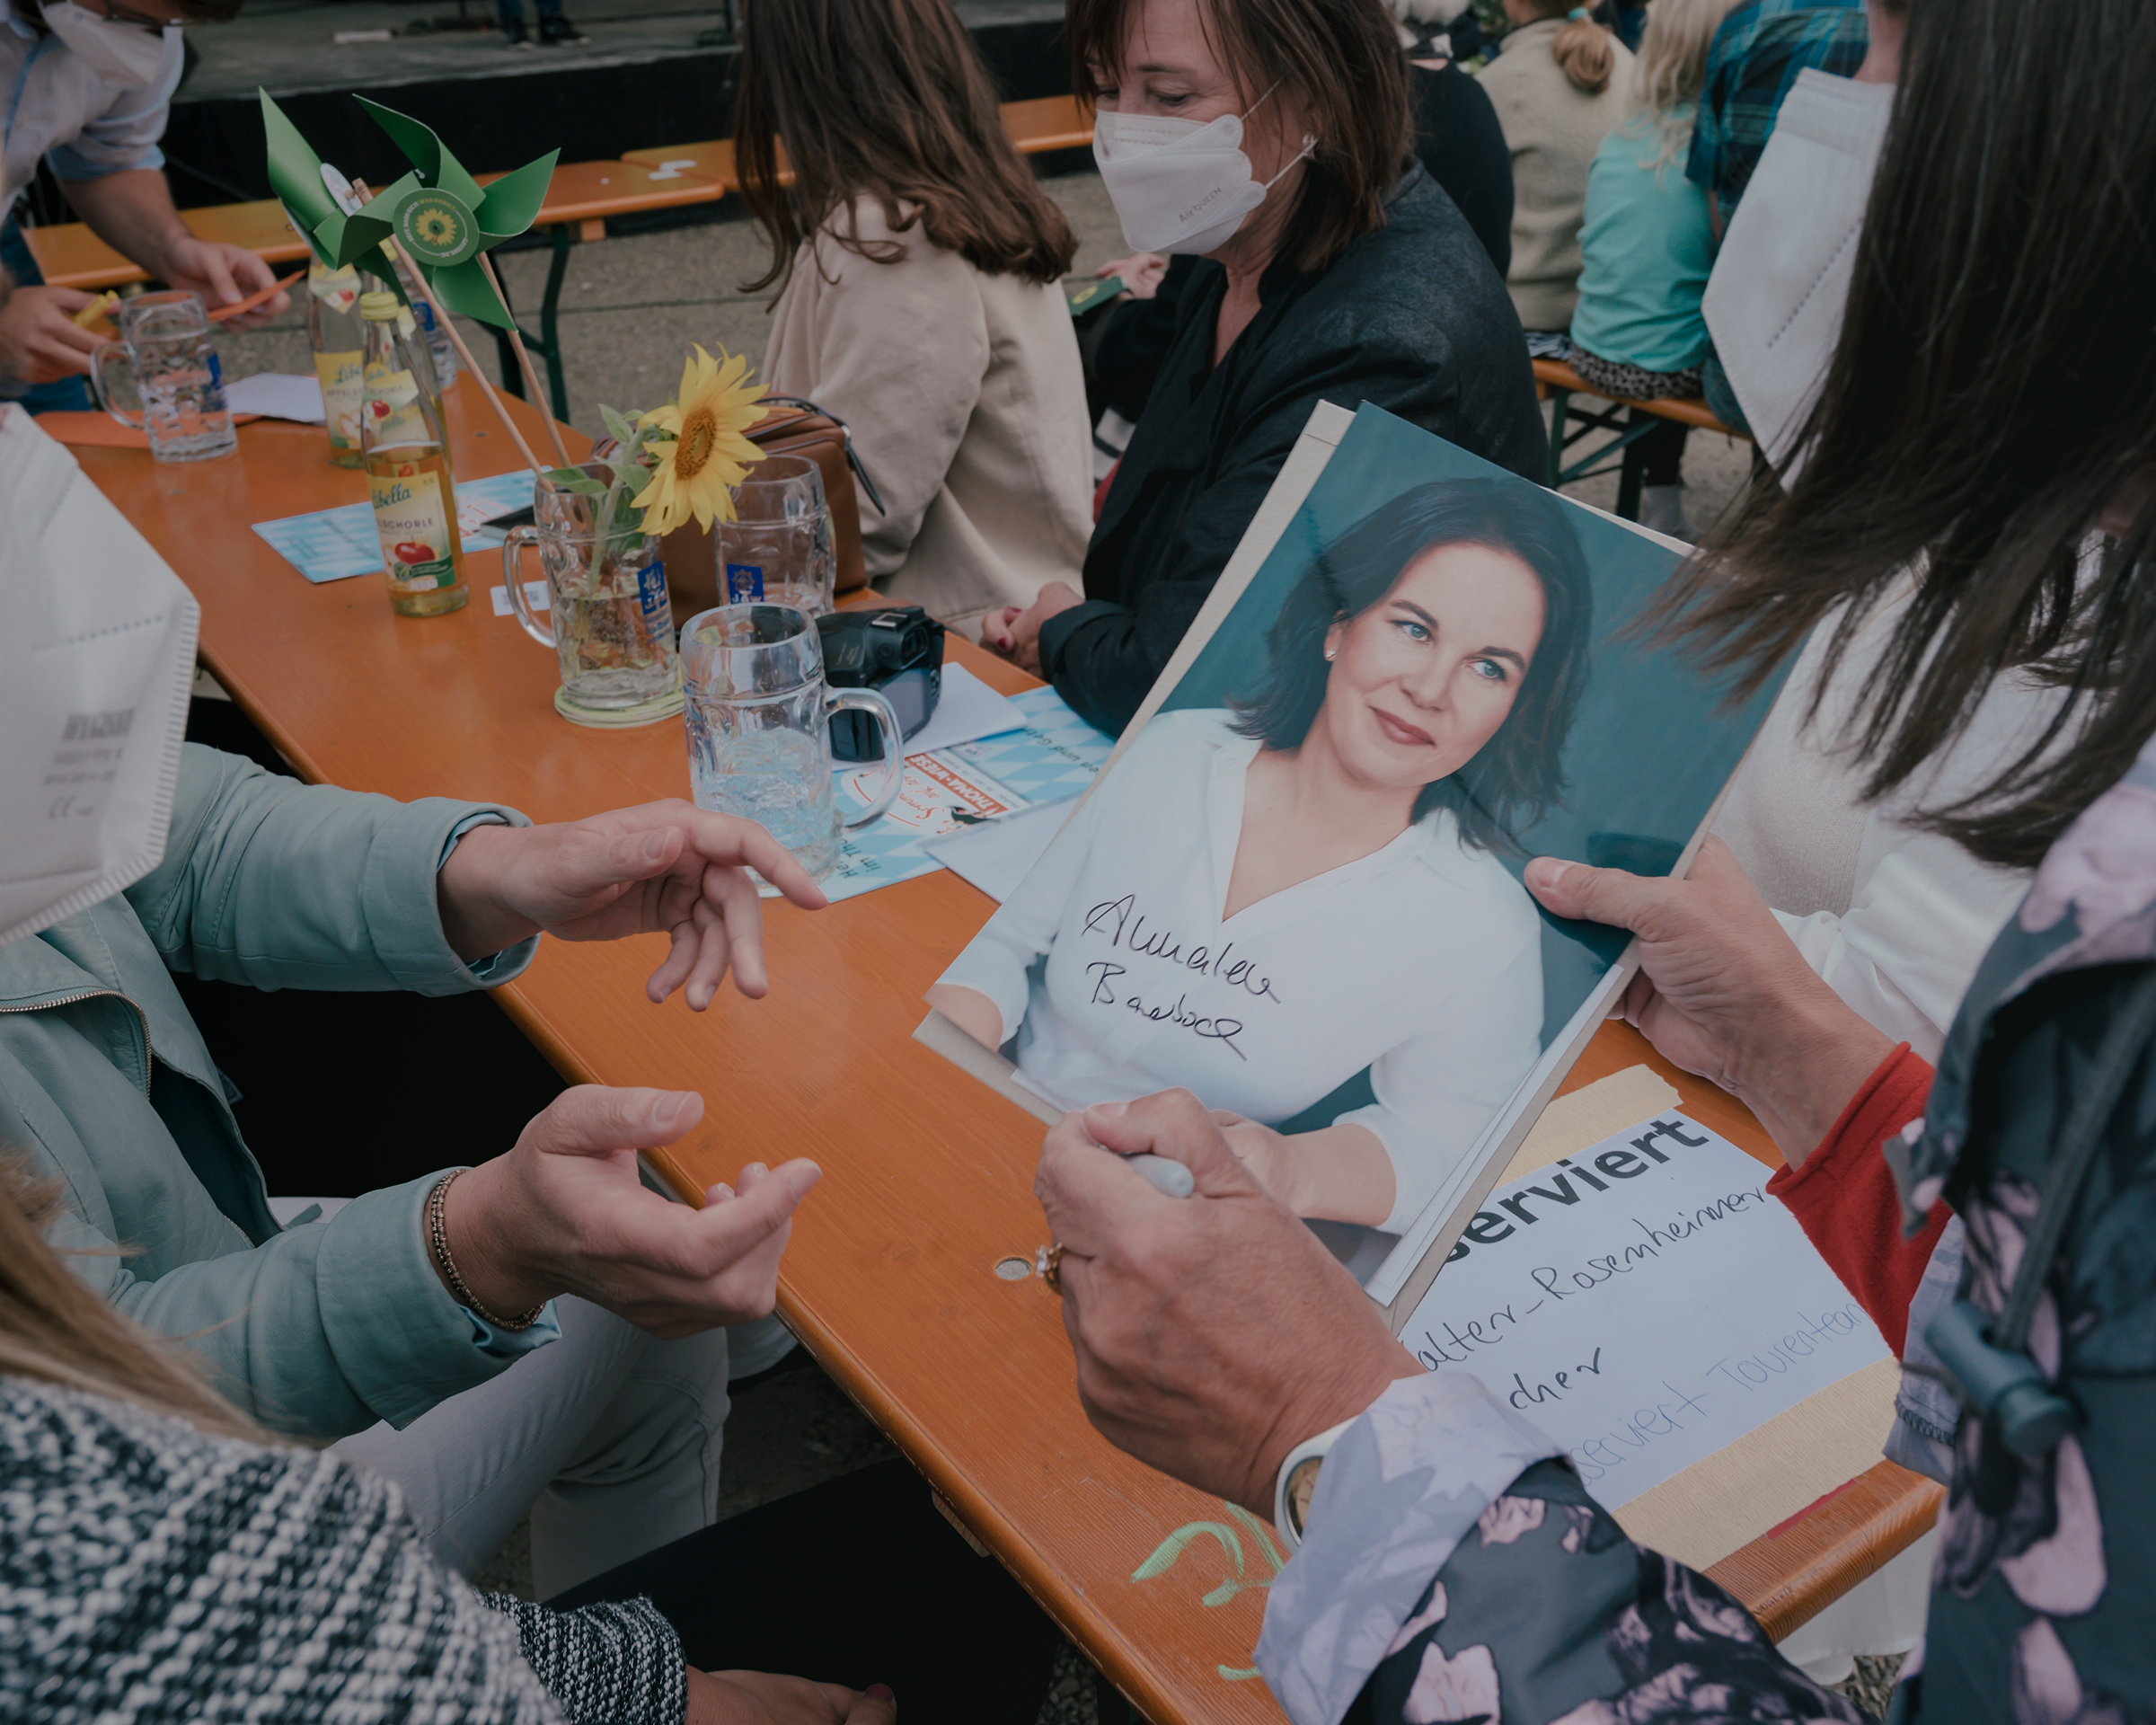 Baerbock hands her autograph to a supporter at the beer garden as part of a campaign event in Dachau